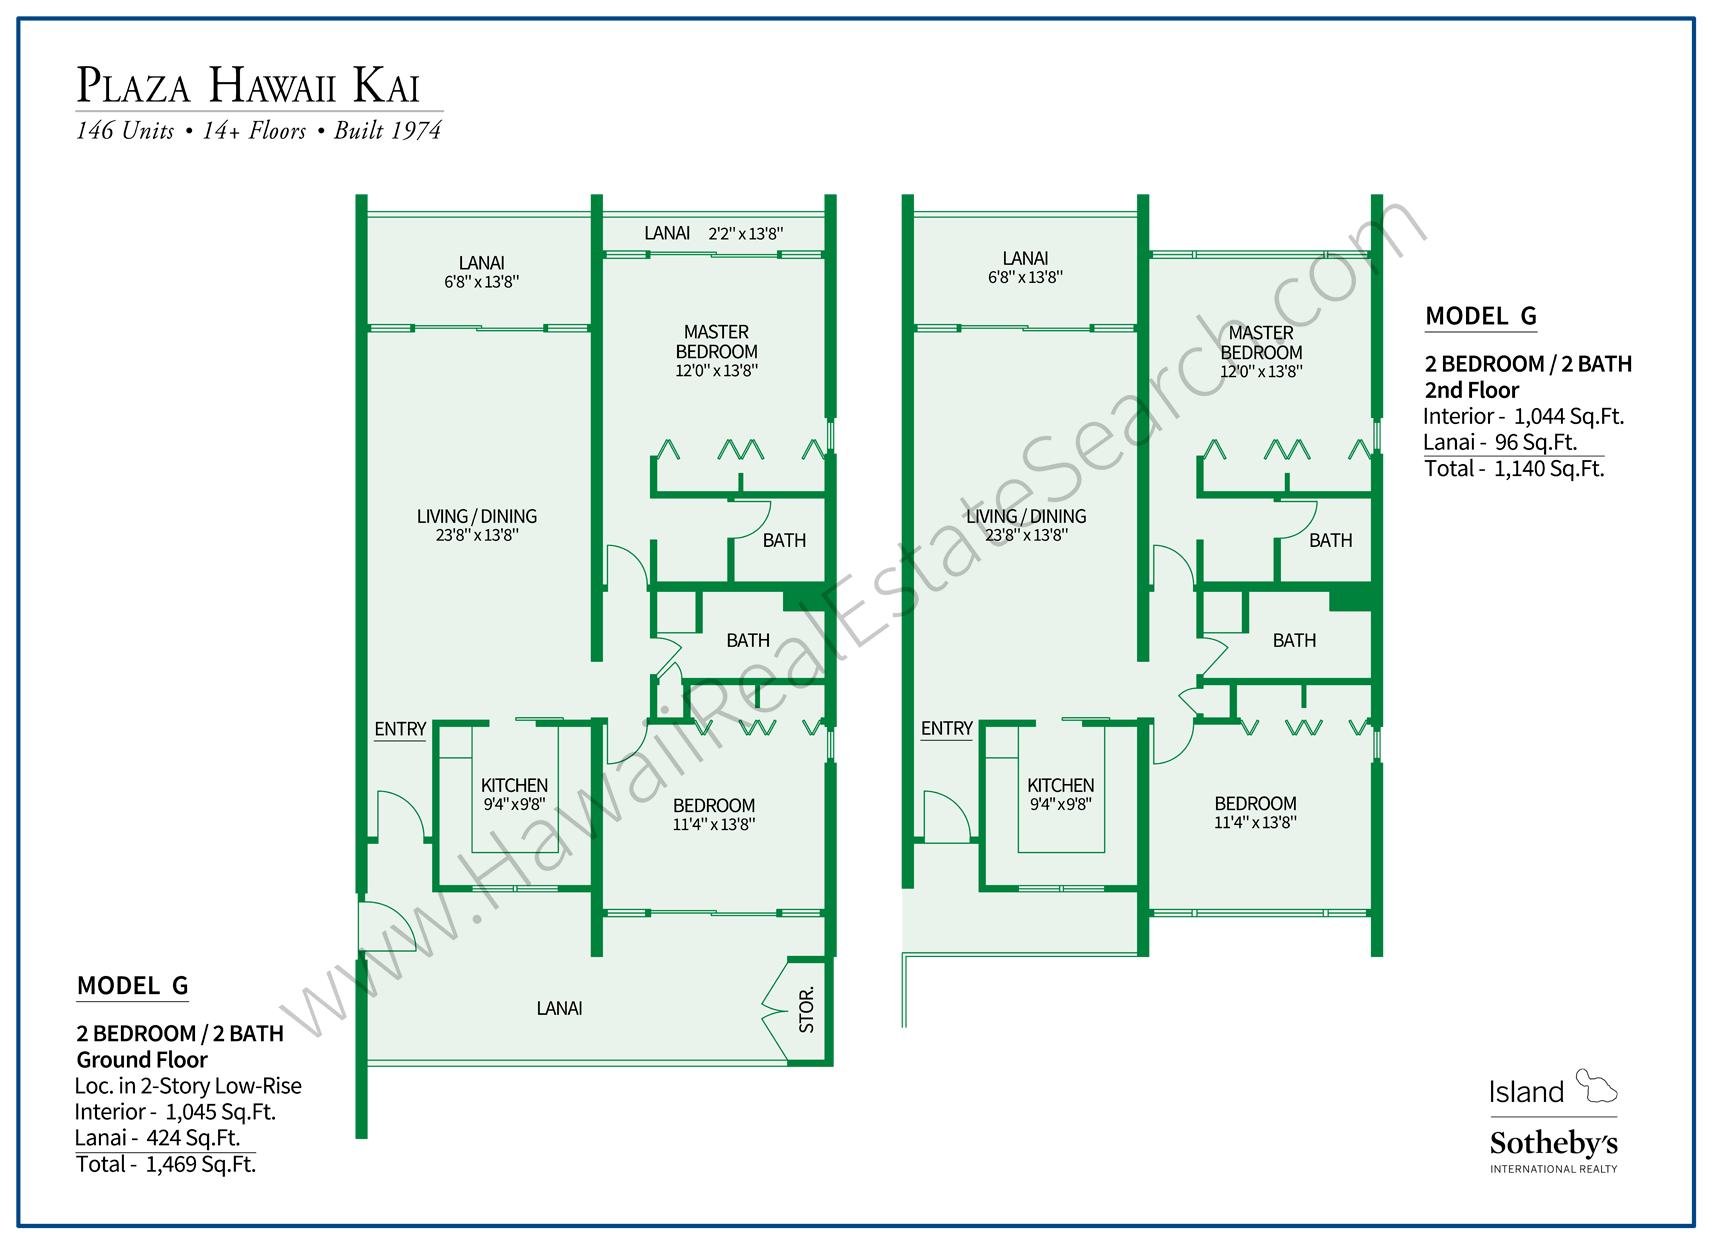 Plaza Hawaii Kai Floor Plan G